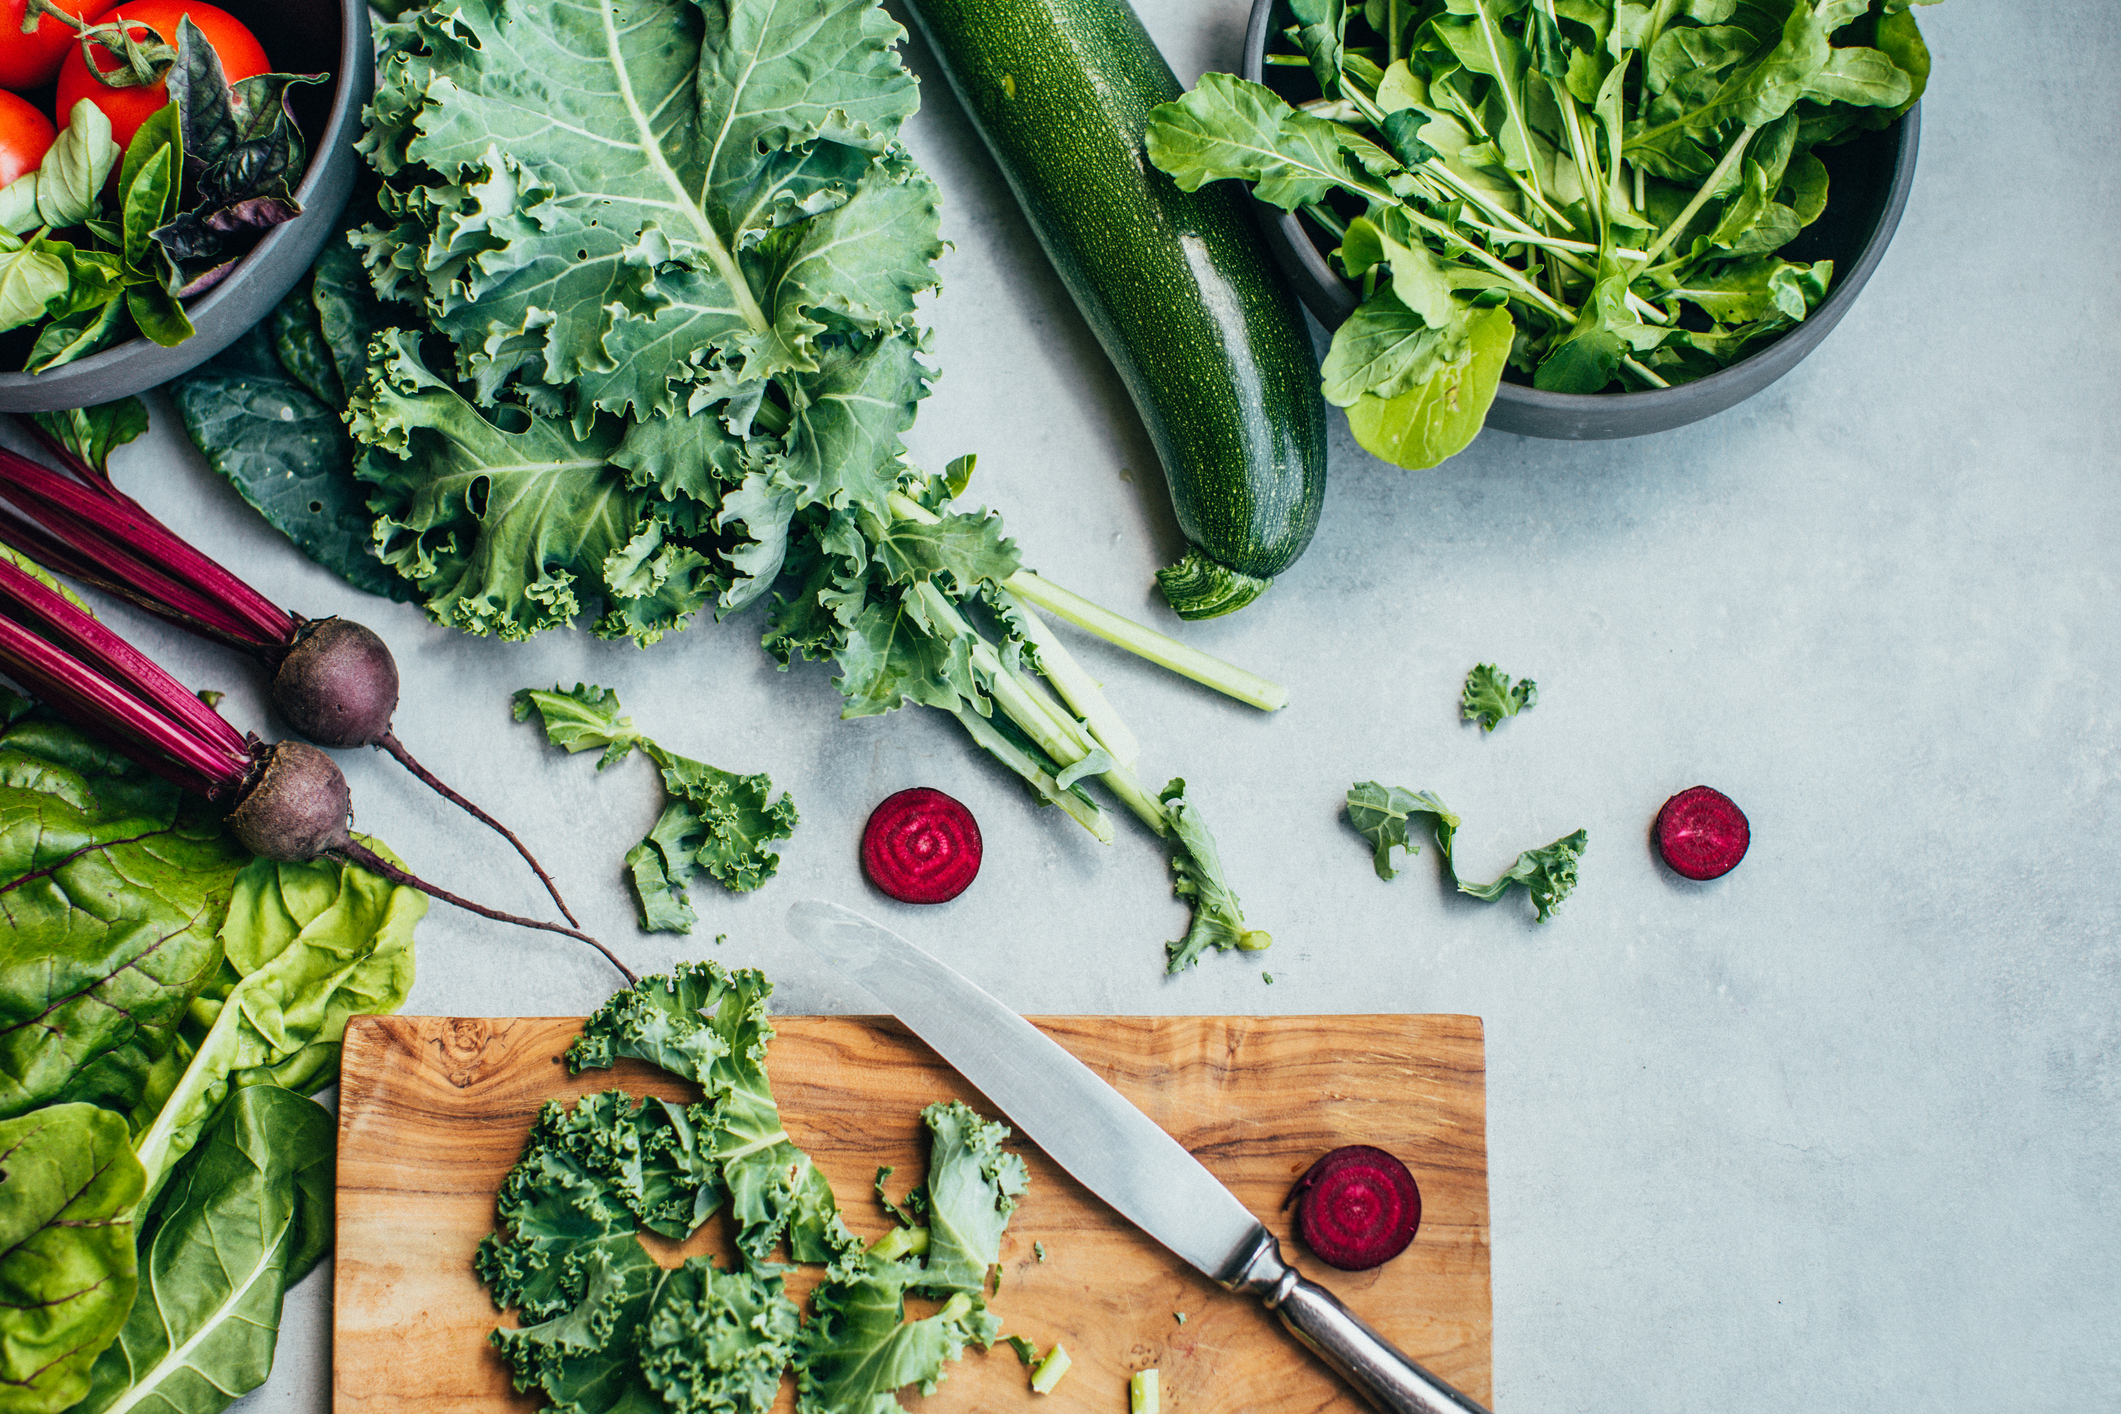 Fresh vegetables like kale and radishes on a cutting board. Eating salad is one way to make eco-friendly choices when going out.